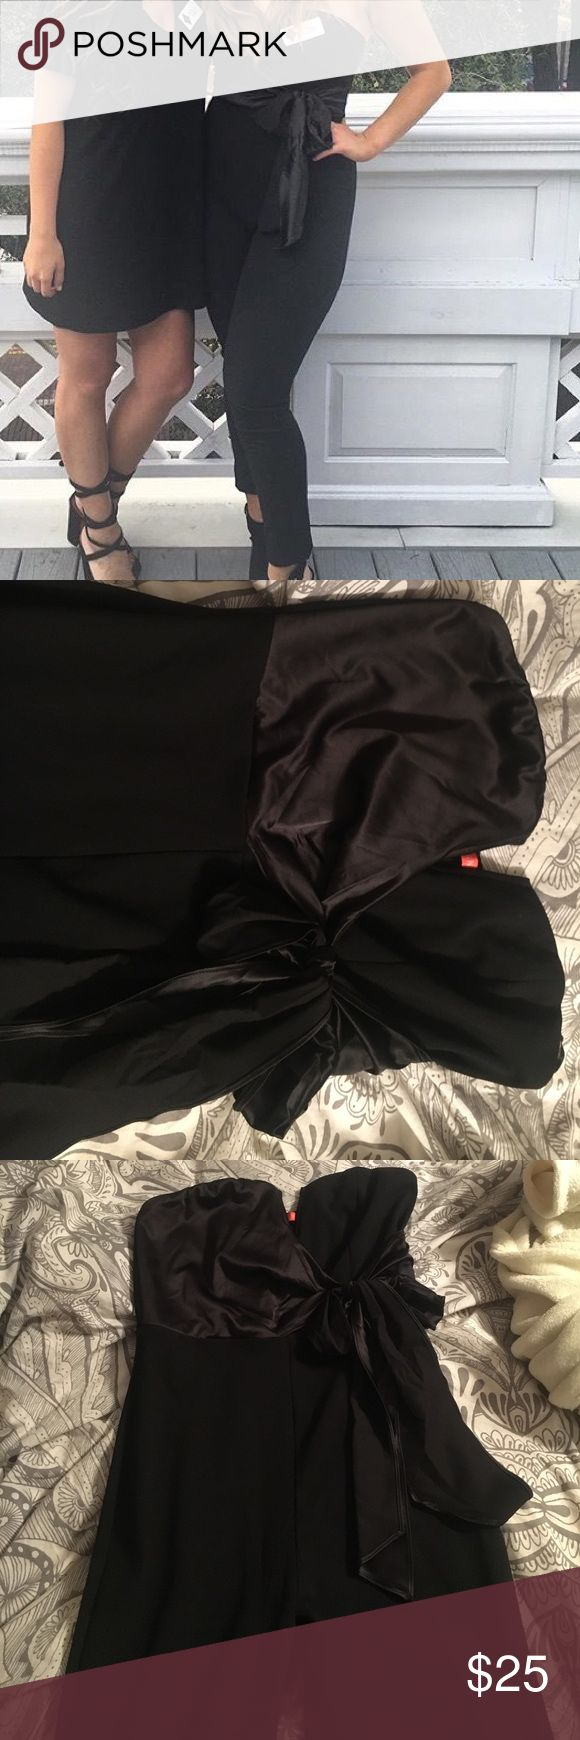 Black Strapless Jumpsuit Black jumpsuit with bow detail. I am 5'5 for size reference. Make me an offer! :) ASOS Pants Jumpsuits & Rompers